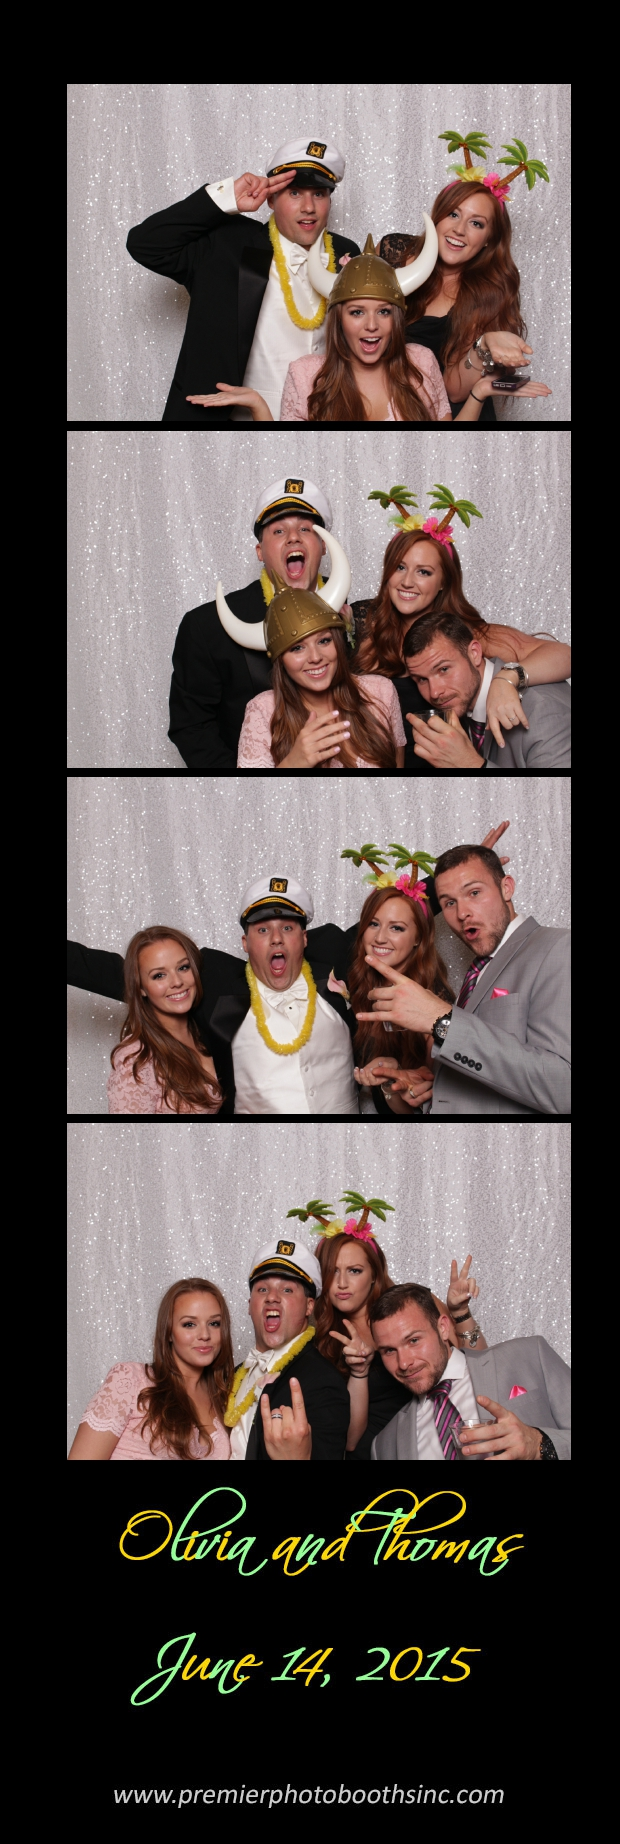 premierphotobooth | The Packages